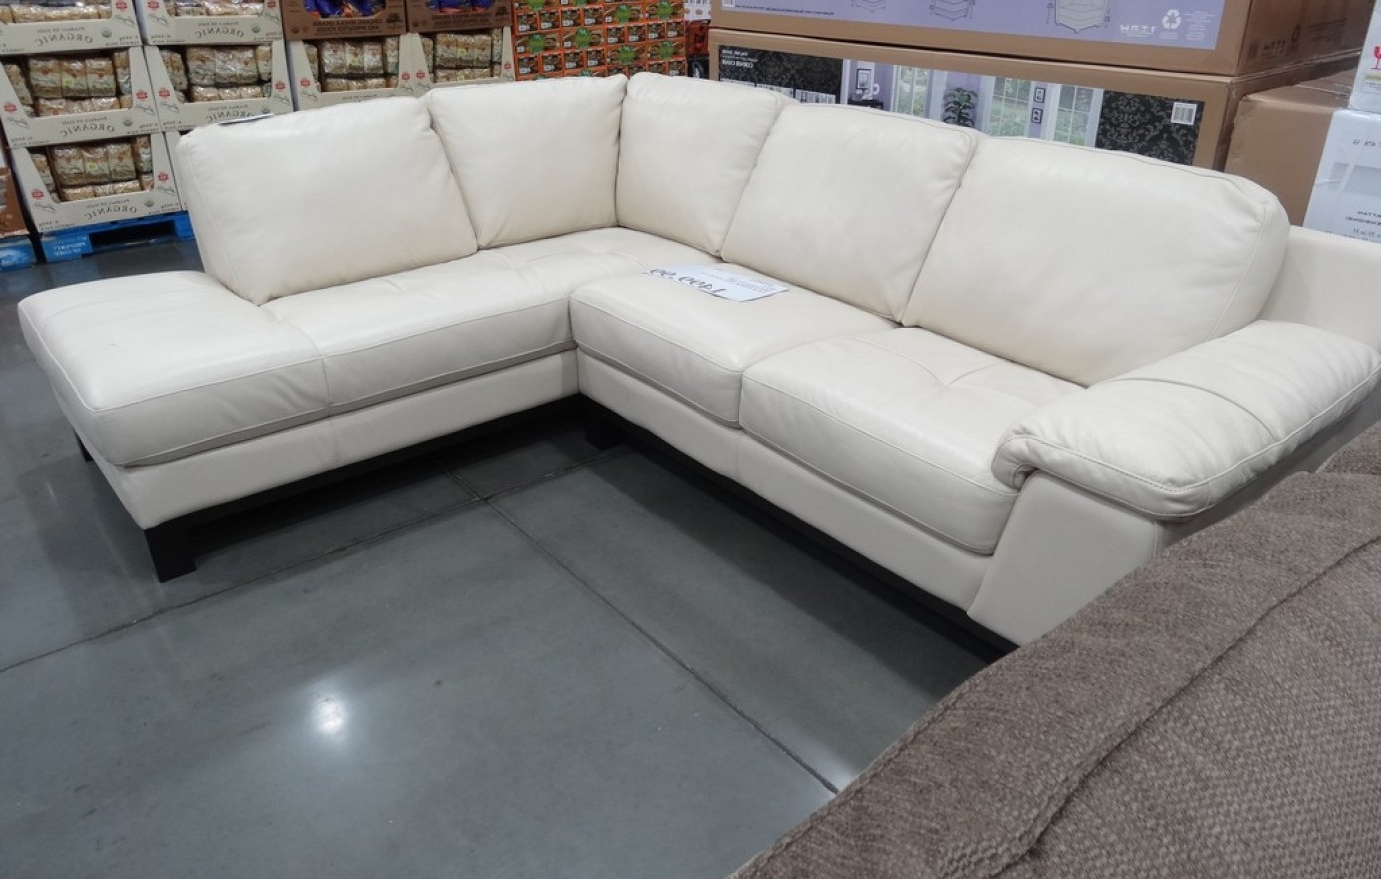 Costco Sectional Sleeper Sofa – Nrhcares With Recent Sectional Sofas At Costco (View 6 of 20)